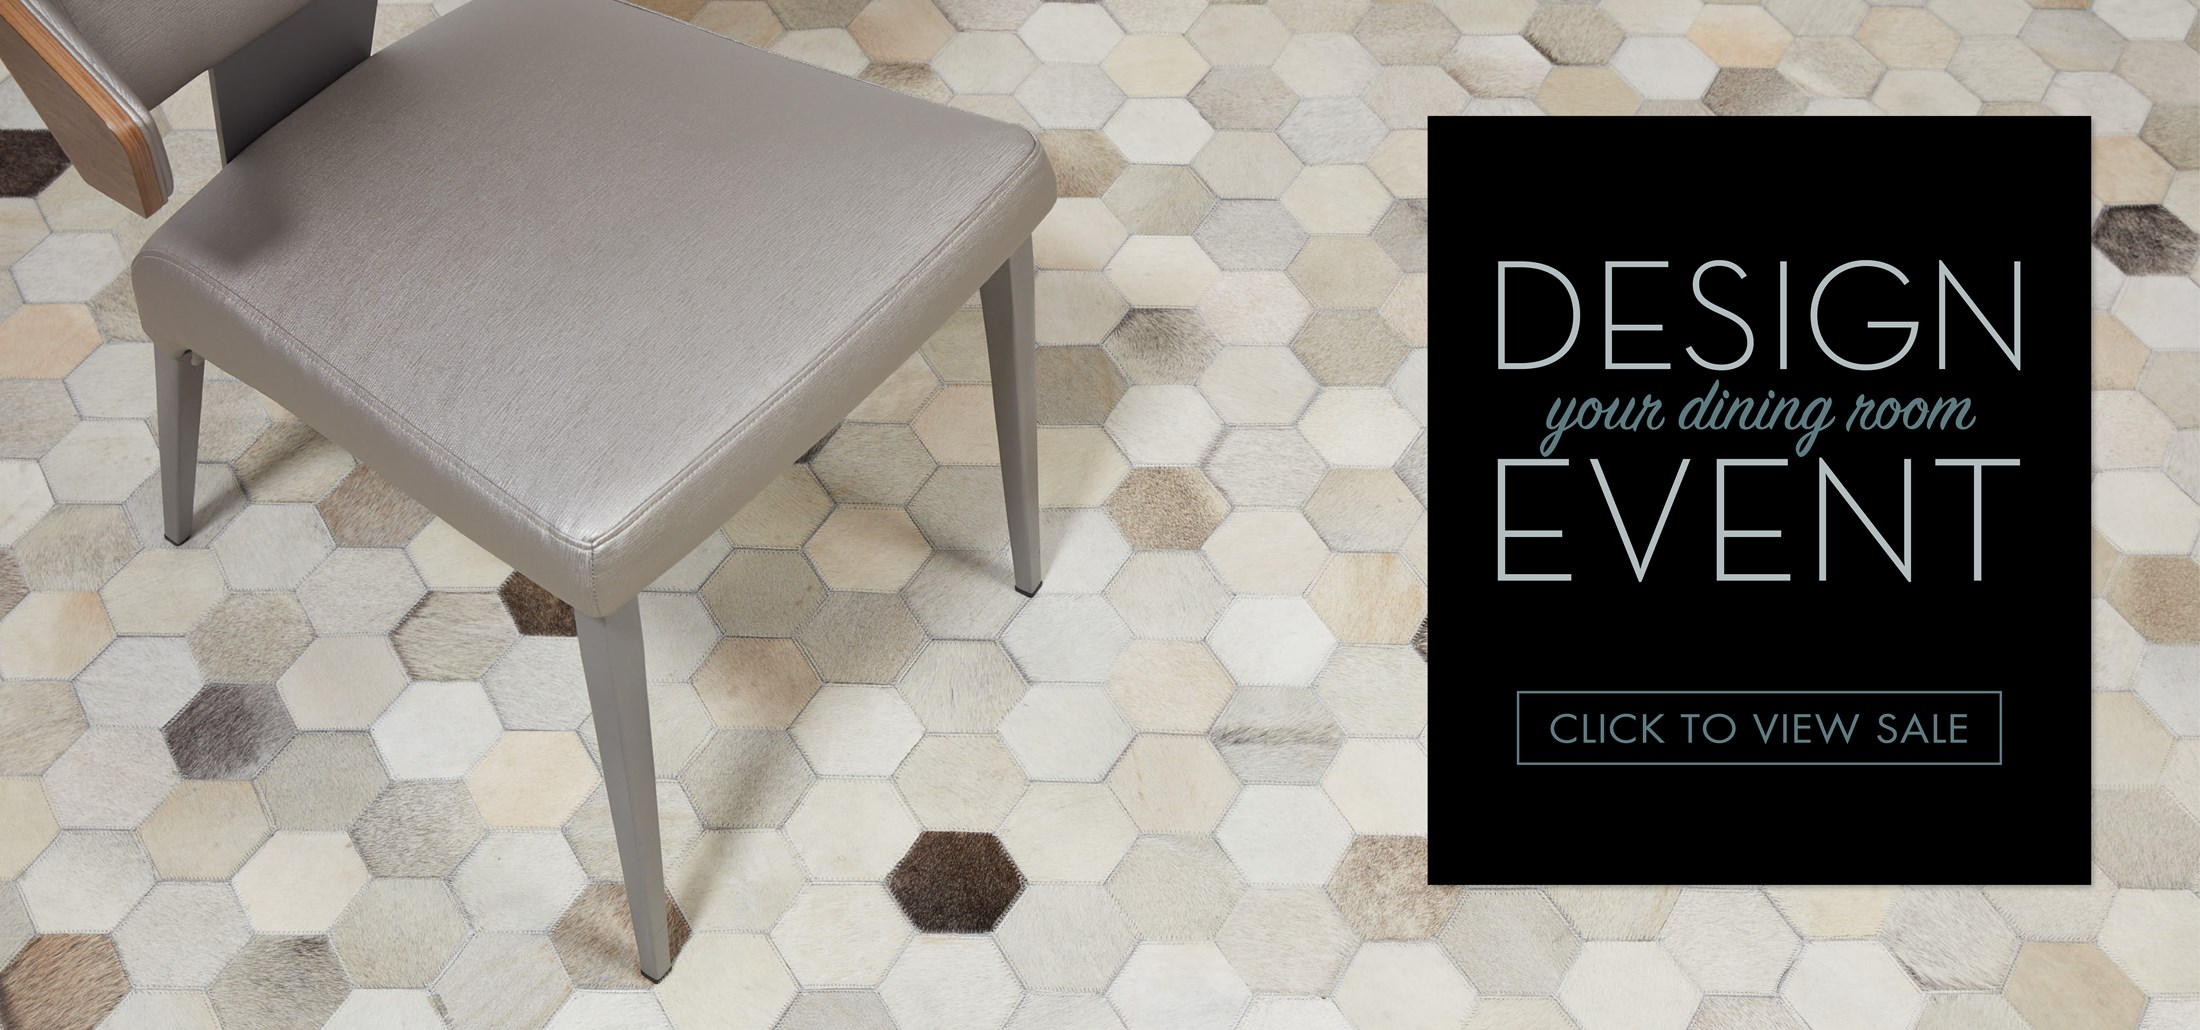 Image of a dining chair on a rug. Text: Design your dining room event. Click to view sale. Links to design your dining room event.